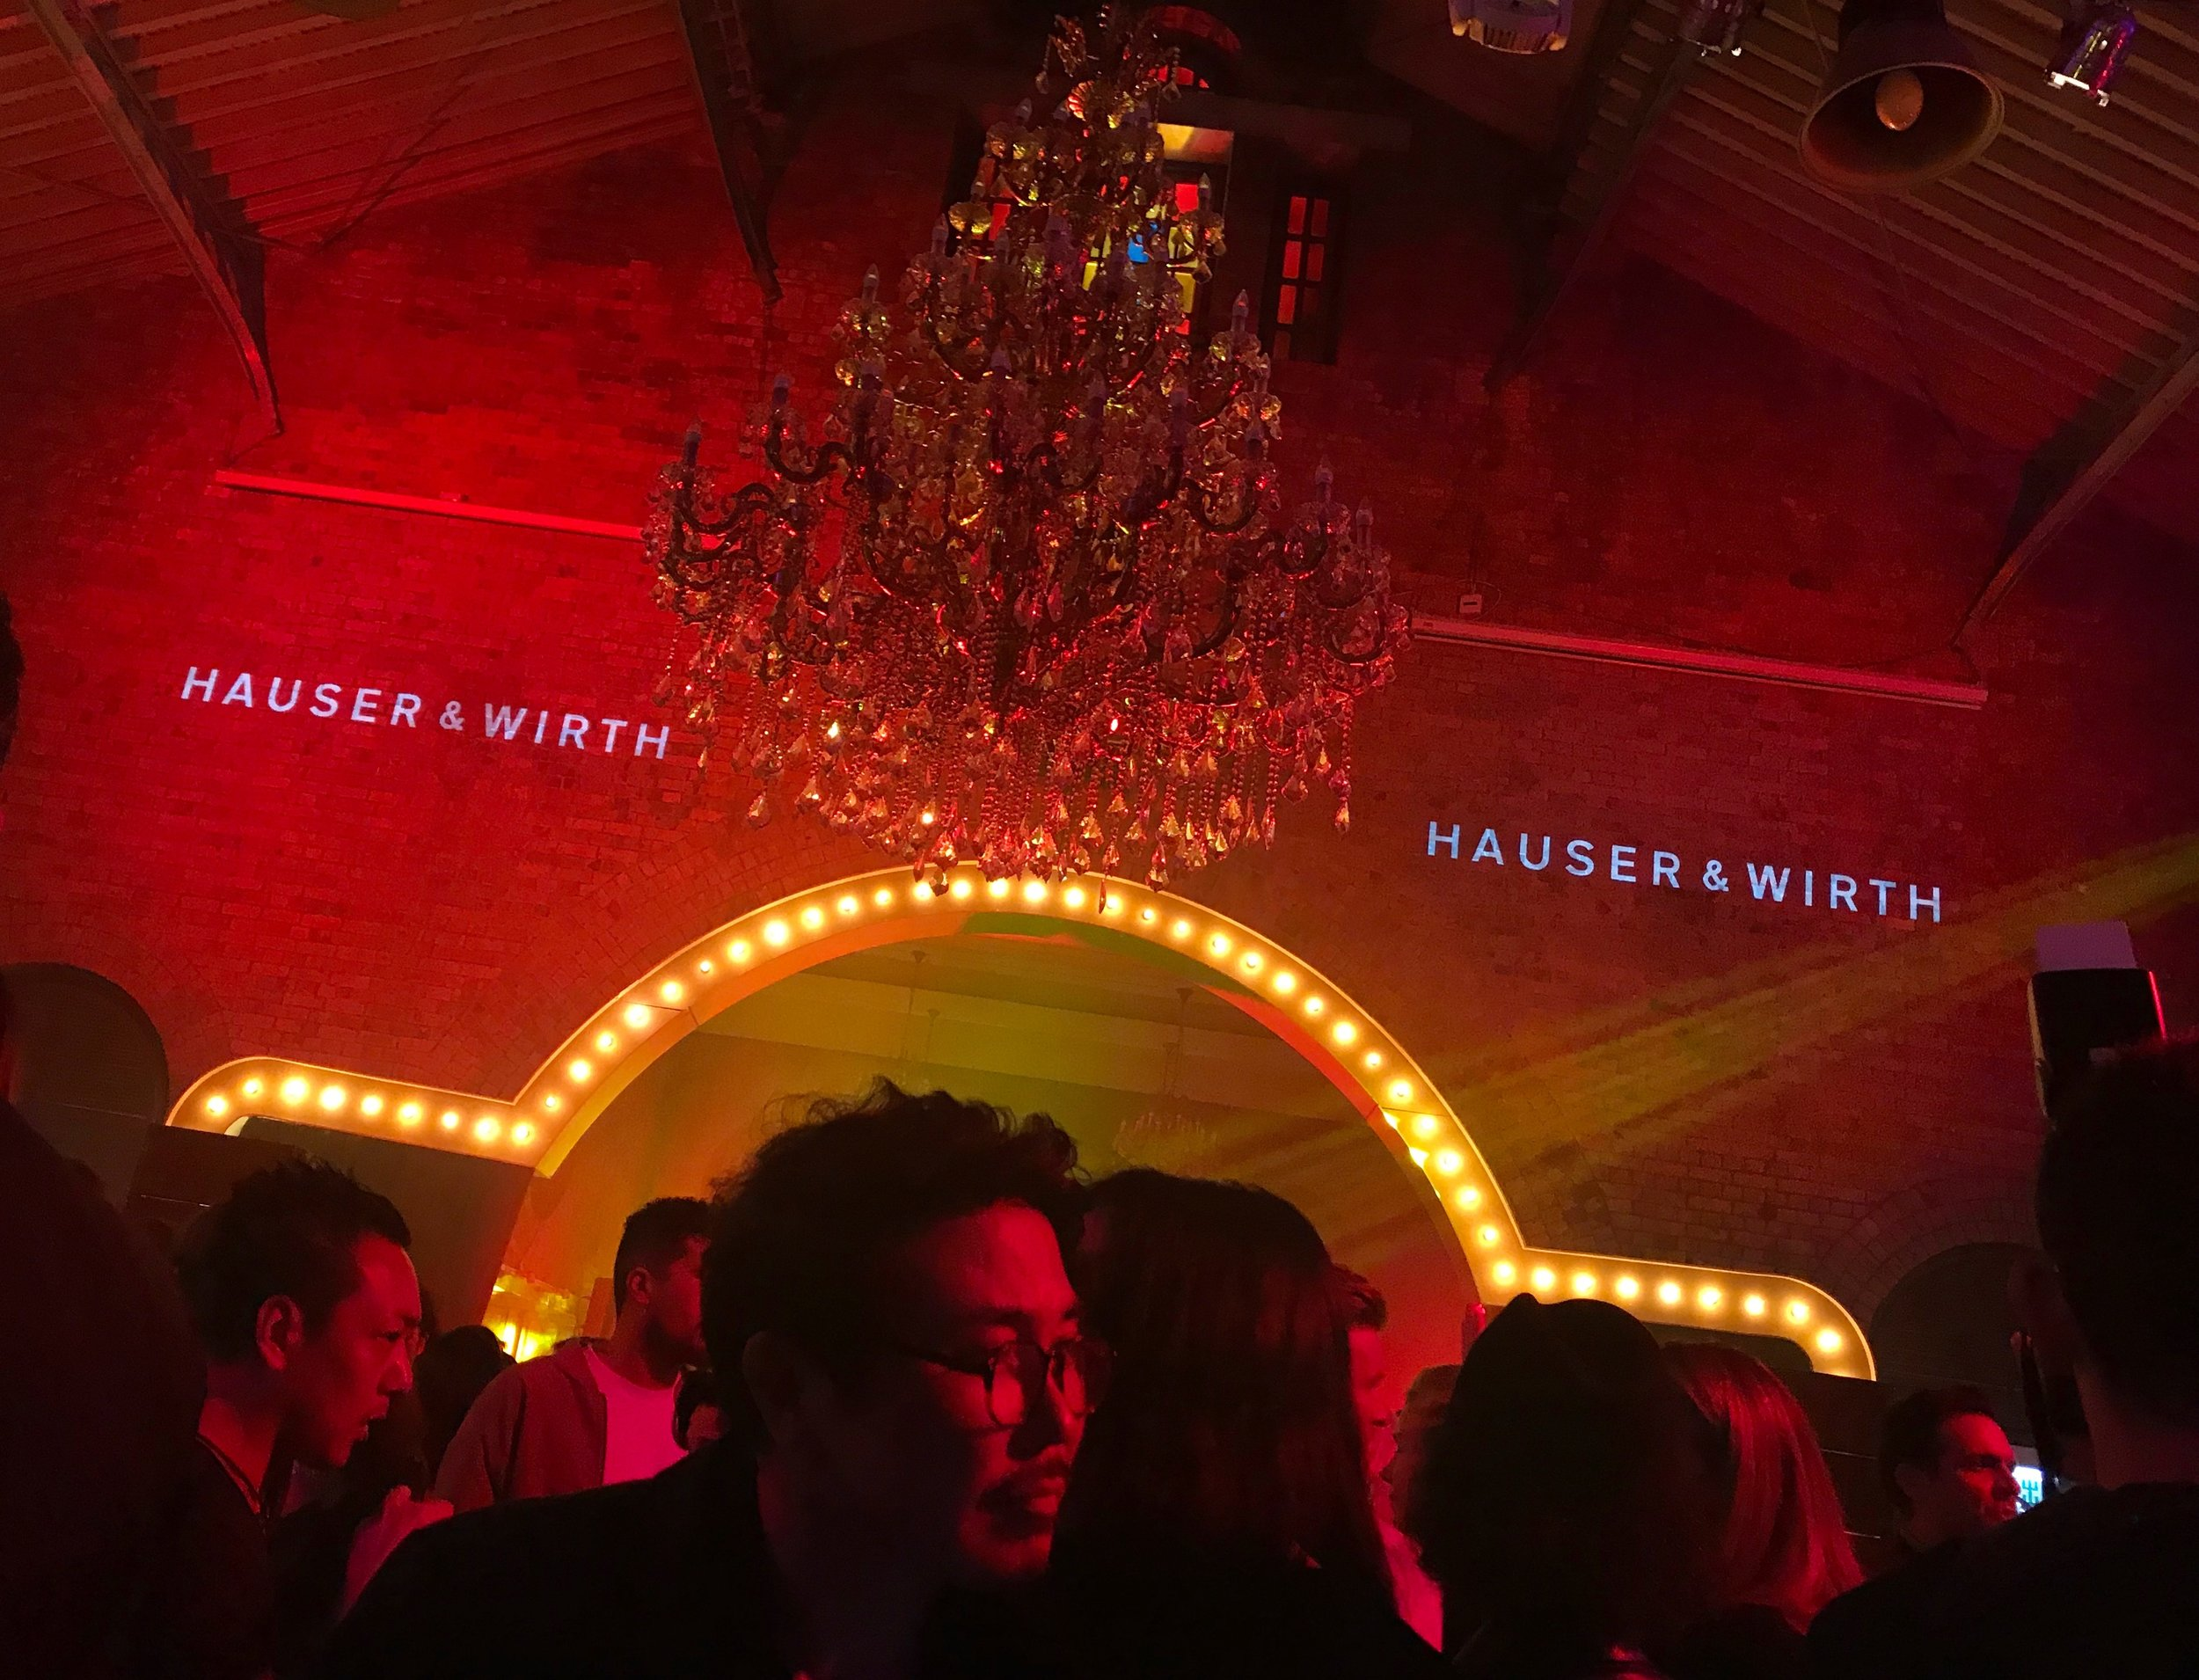 Hauser & Wirth's Hong Kong gallery VIP launch party